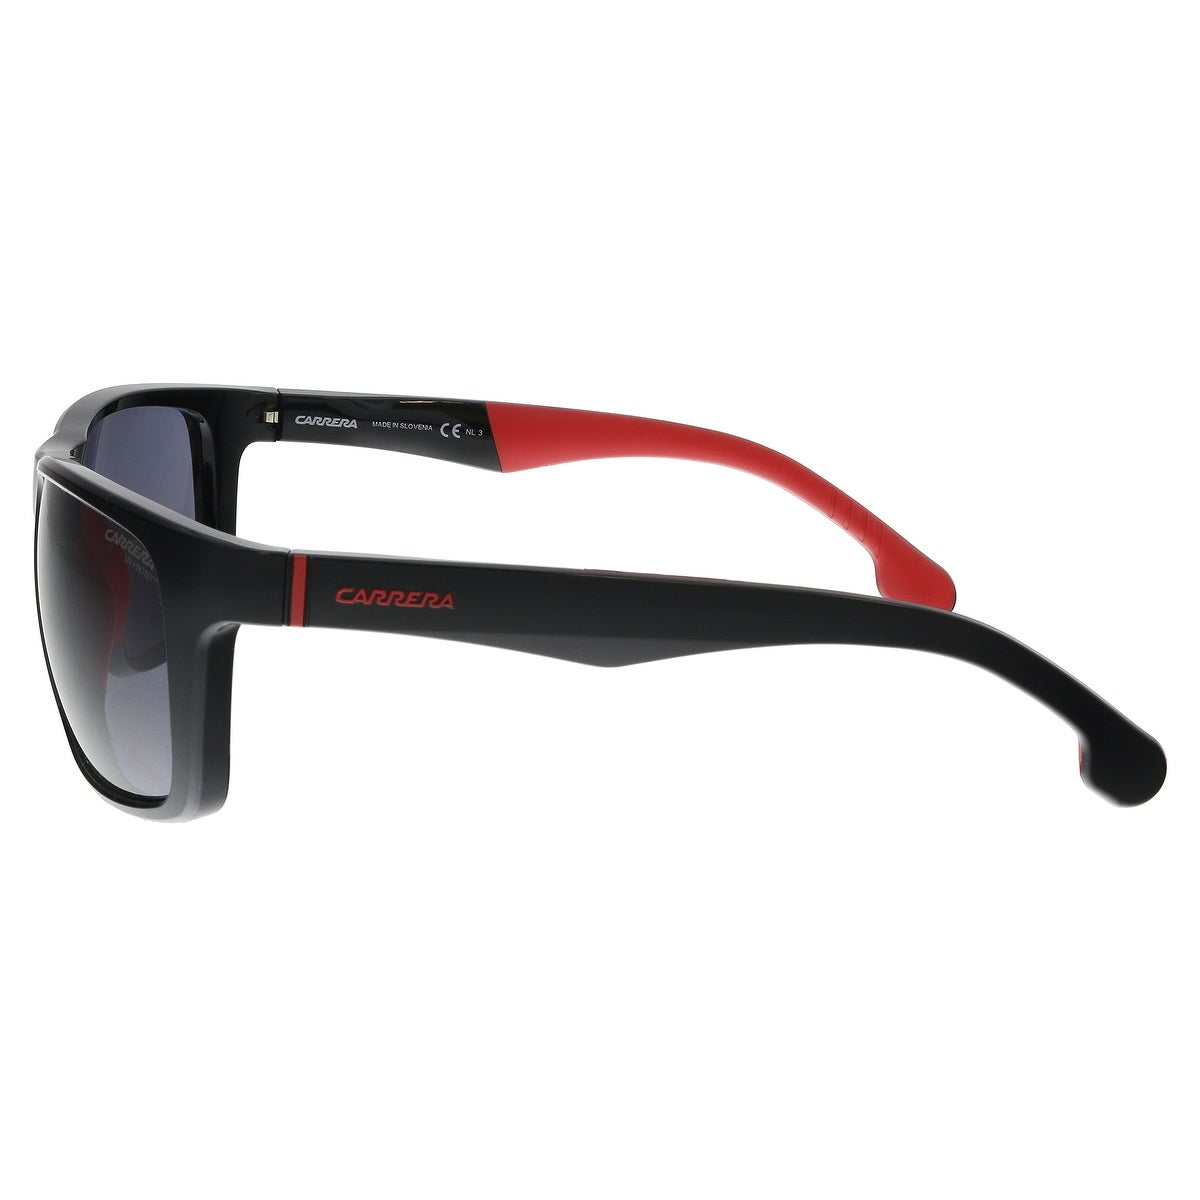 c703491e8e303 Shop Carrera CARRERA 8027 S 0807 Black Rectangle Sunglasses - 57-19 ...